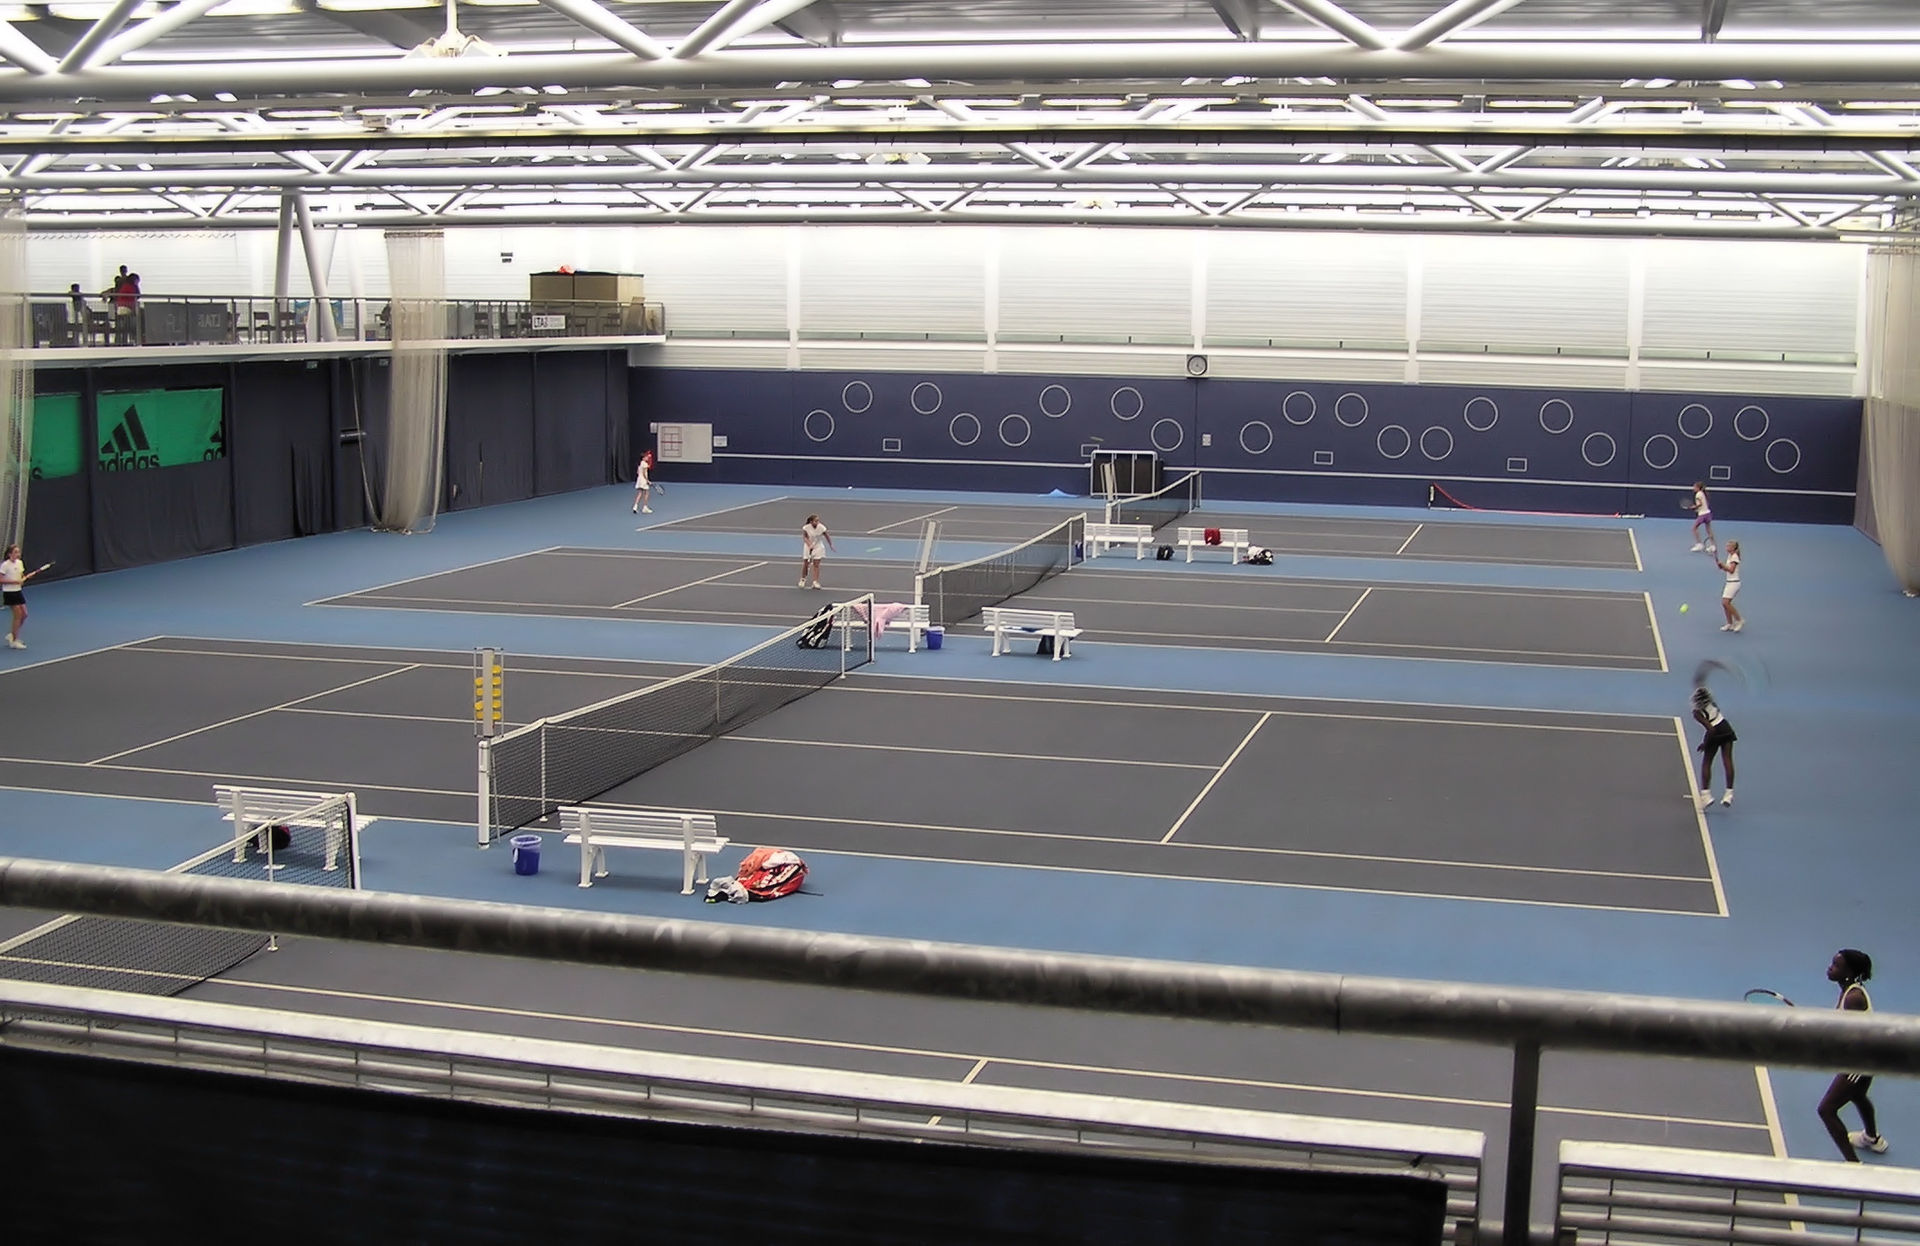 University of Bath - The University of Bath Sports Training Village indoor tennis courts, Bath, England